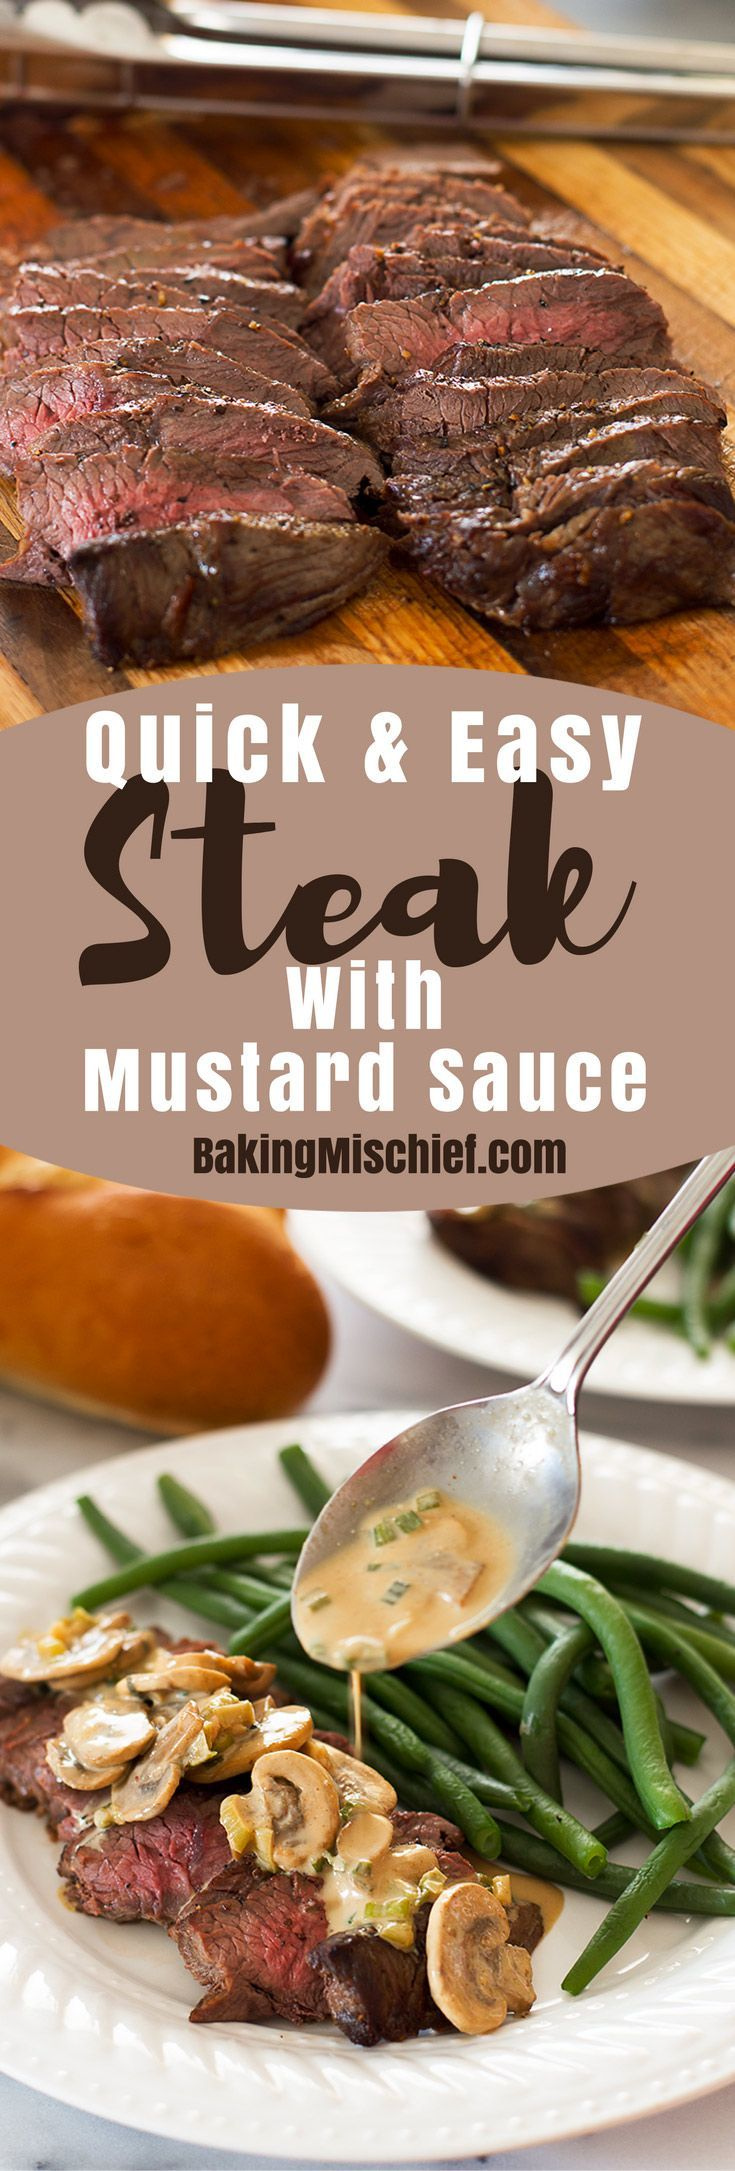 This Top Sirloin Steak with Mustard Sauce recipe is my go-to dinner for busy weeknights when I'm craving red meat! It's fast, healthy, and delicious. Recipe includes nutritional information. From http://BakingMischief.com